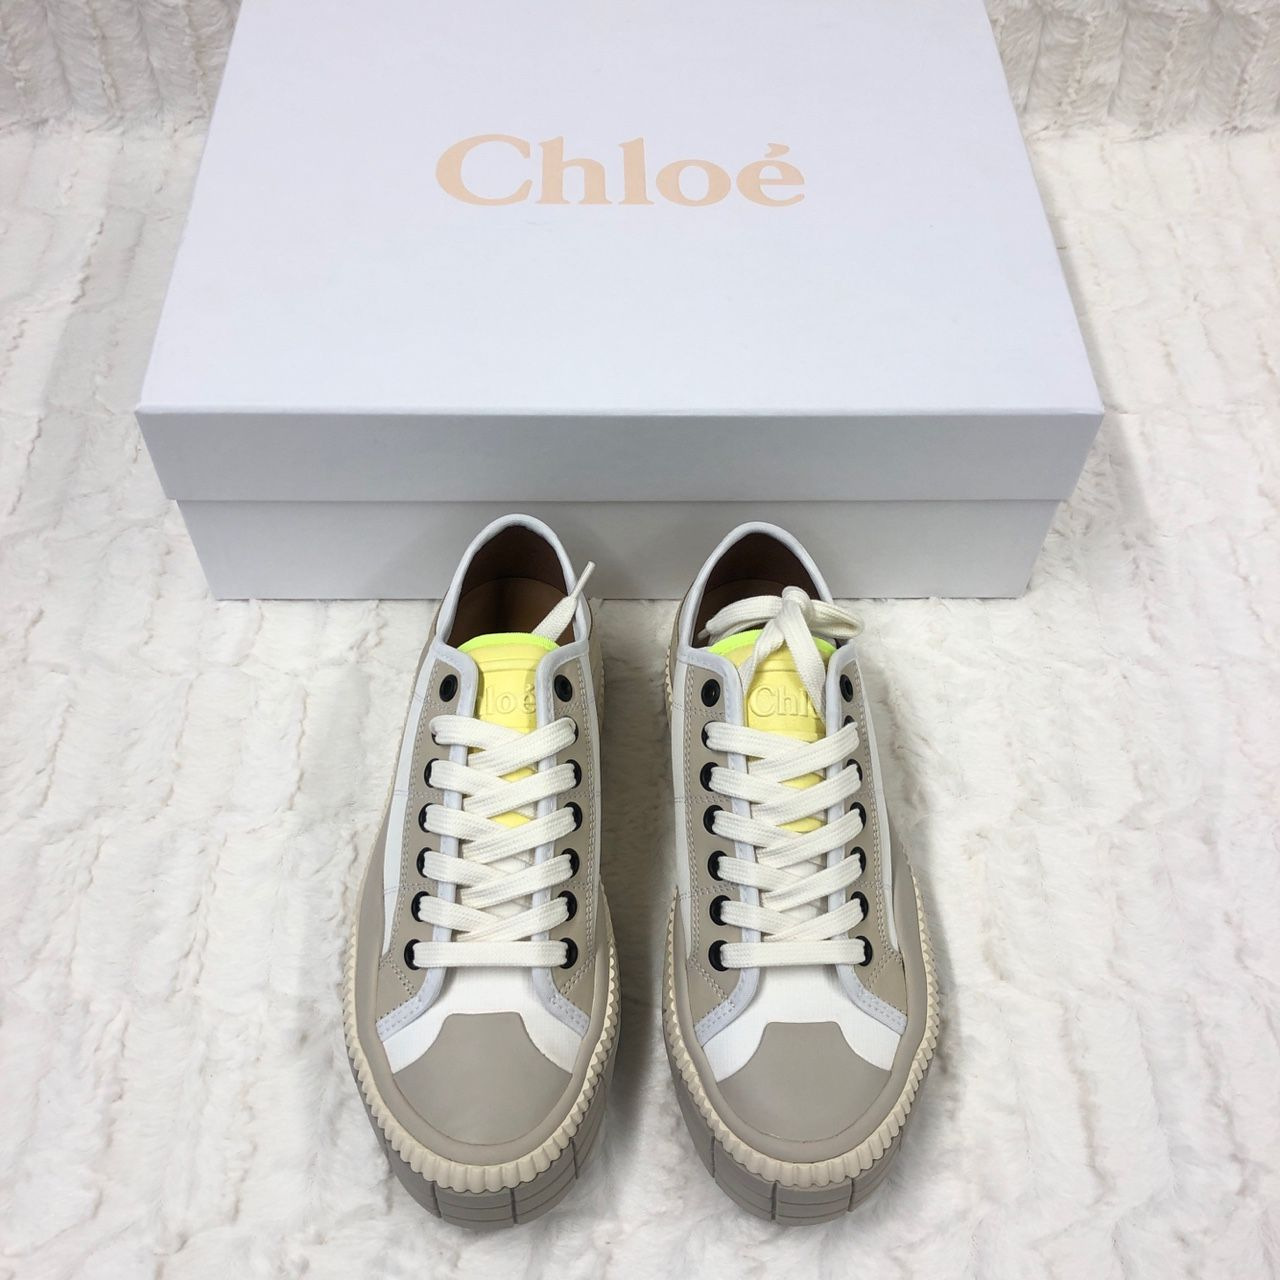 Chloe Clint suede-trimmed sneakers P00432776